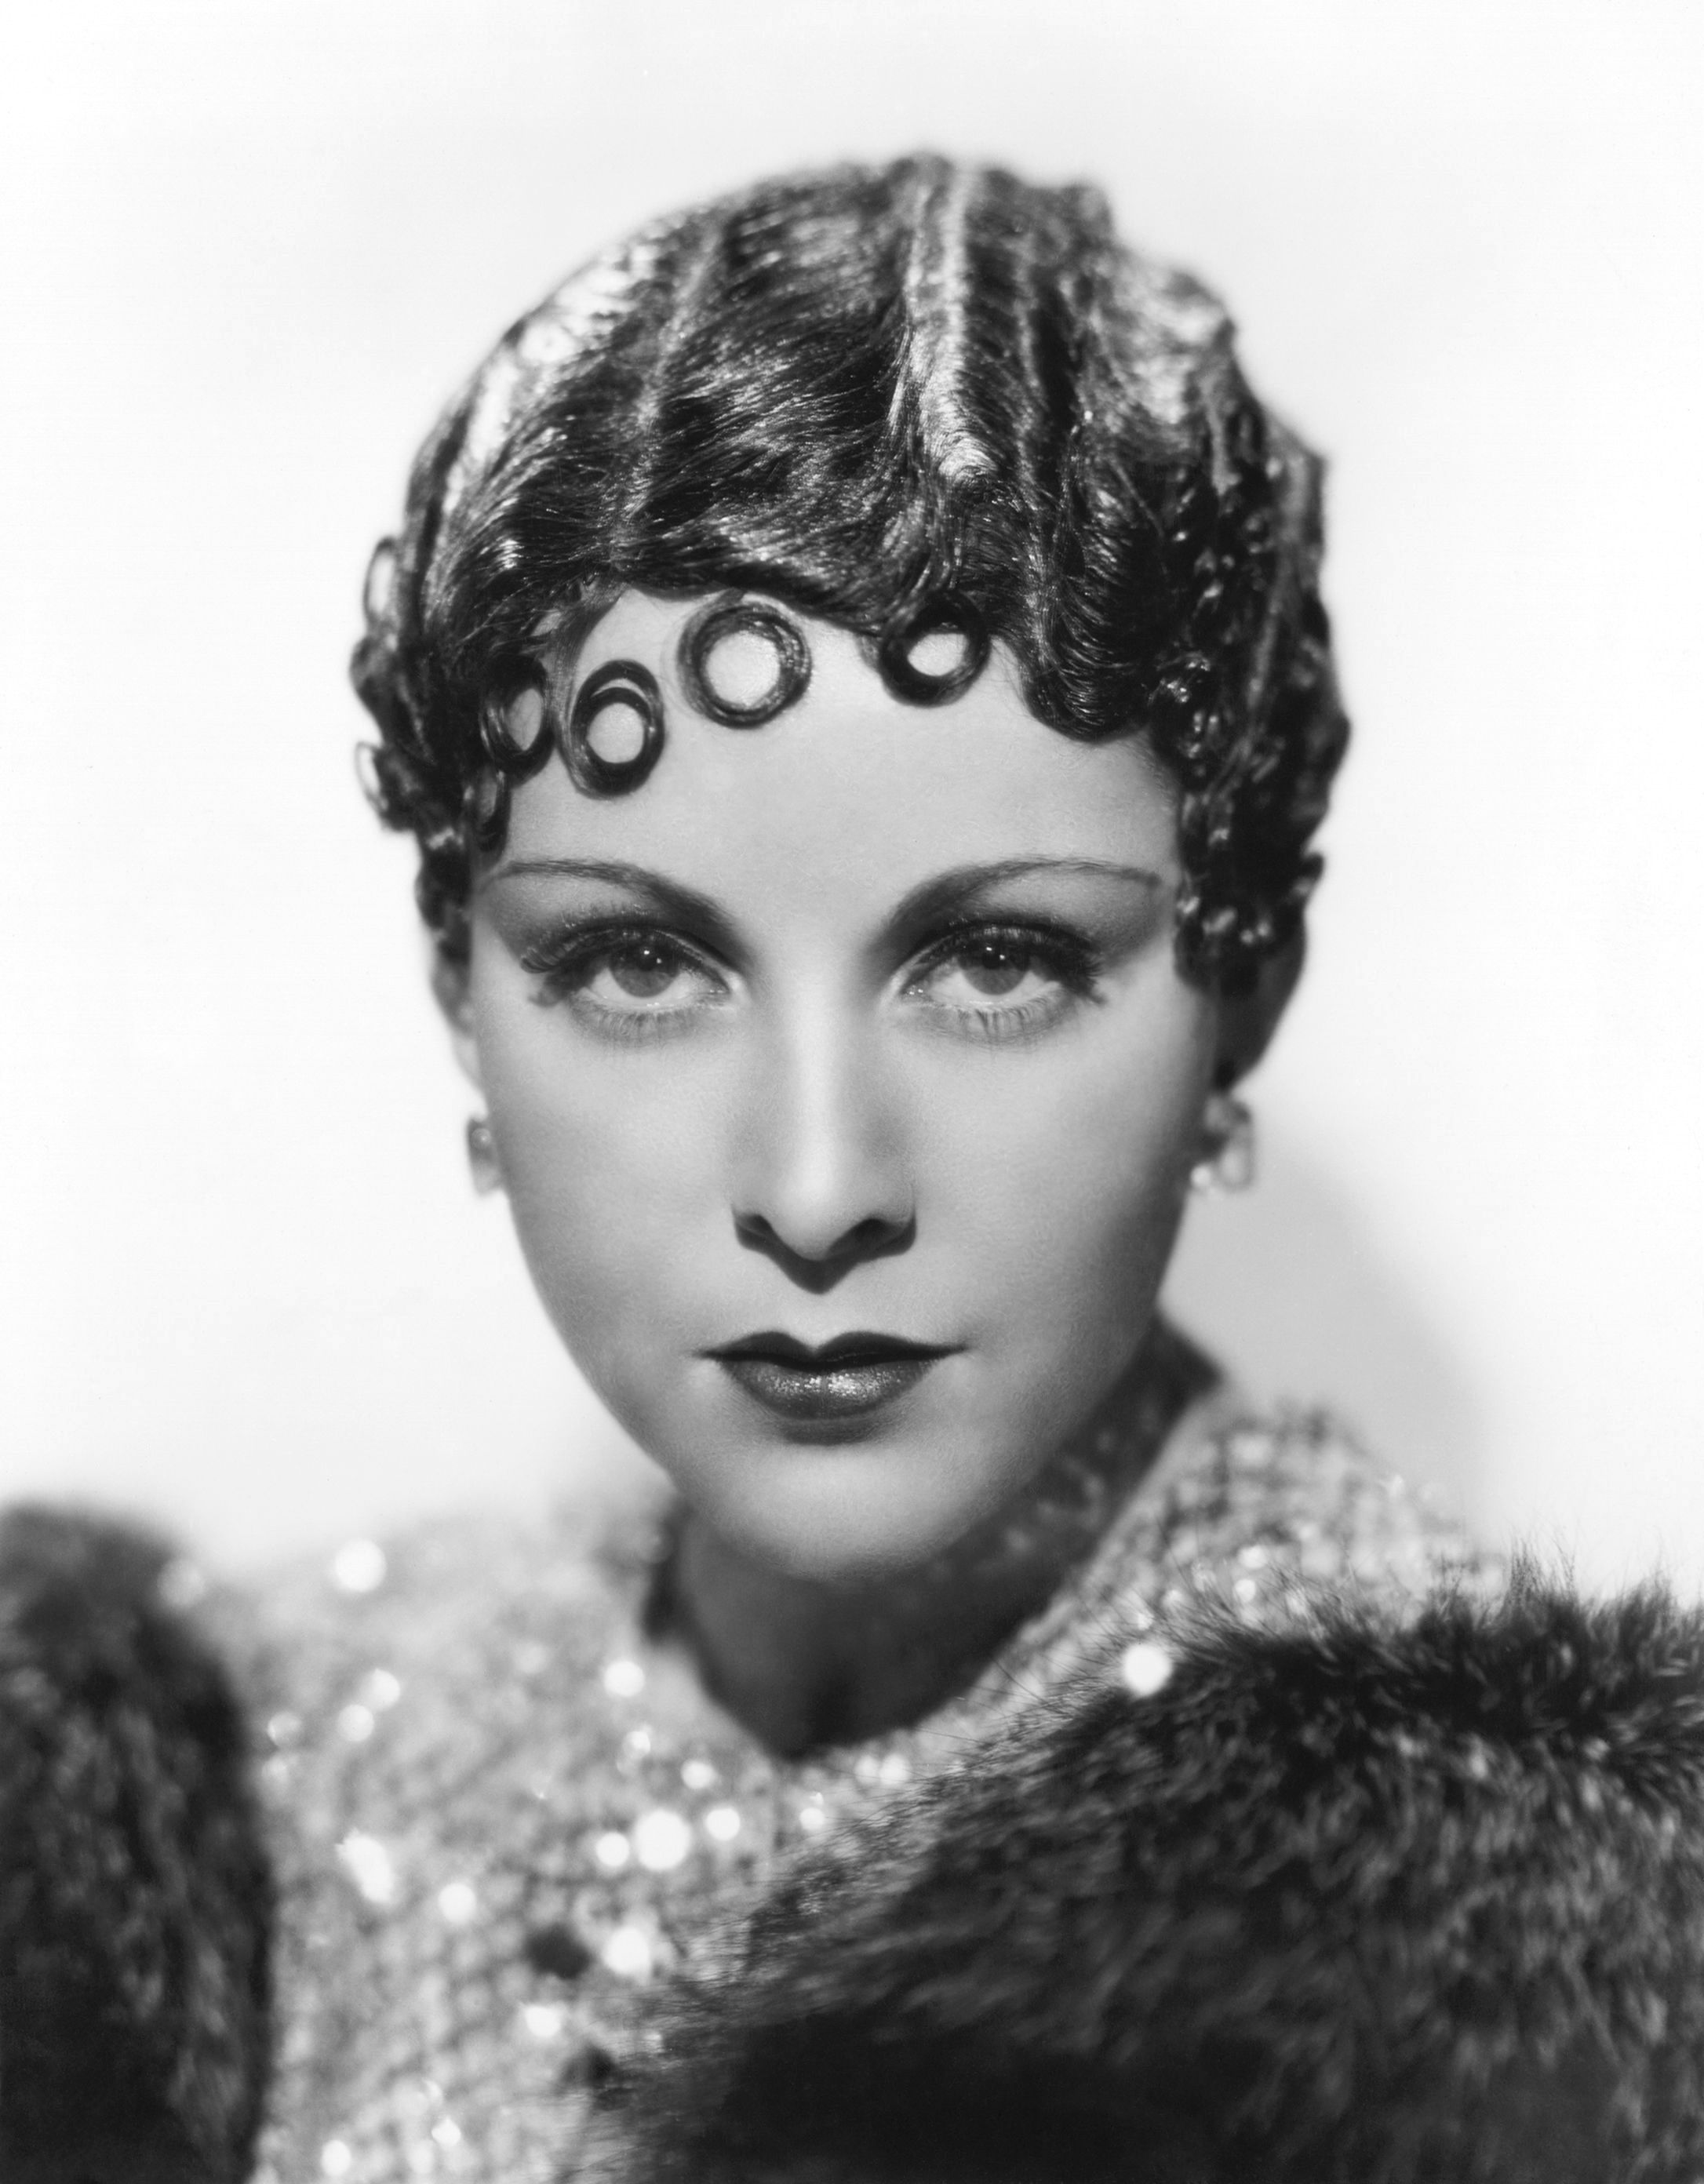 1920s Hairstyle Hairstyle Hairstyle Ideas Vintage Hairstyles 1920s Hair 1940s Hairstyles